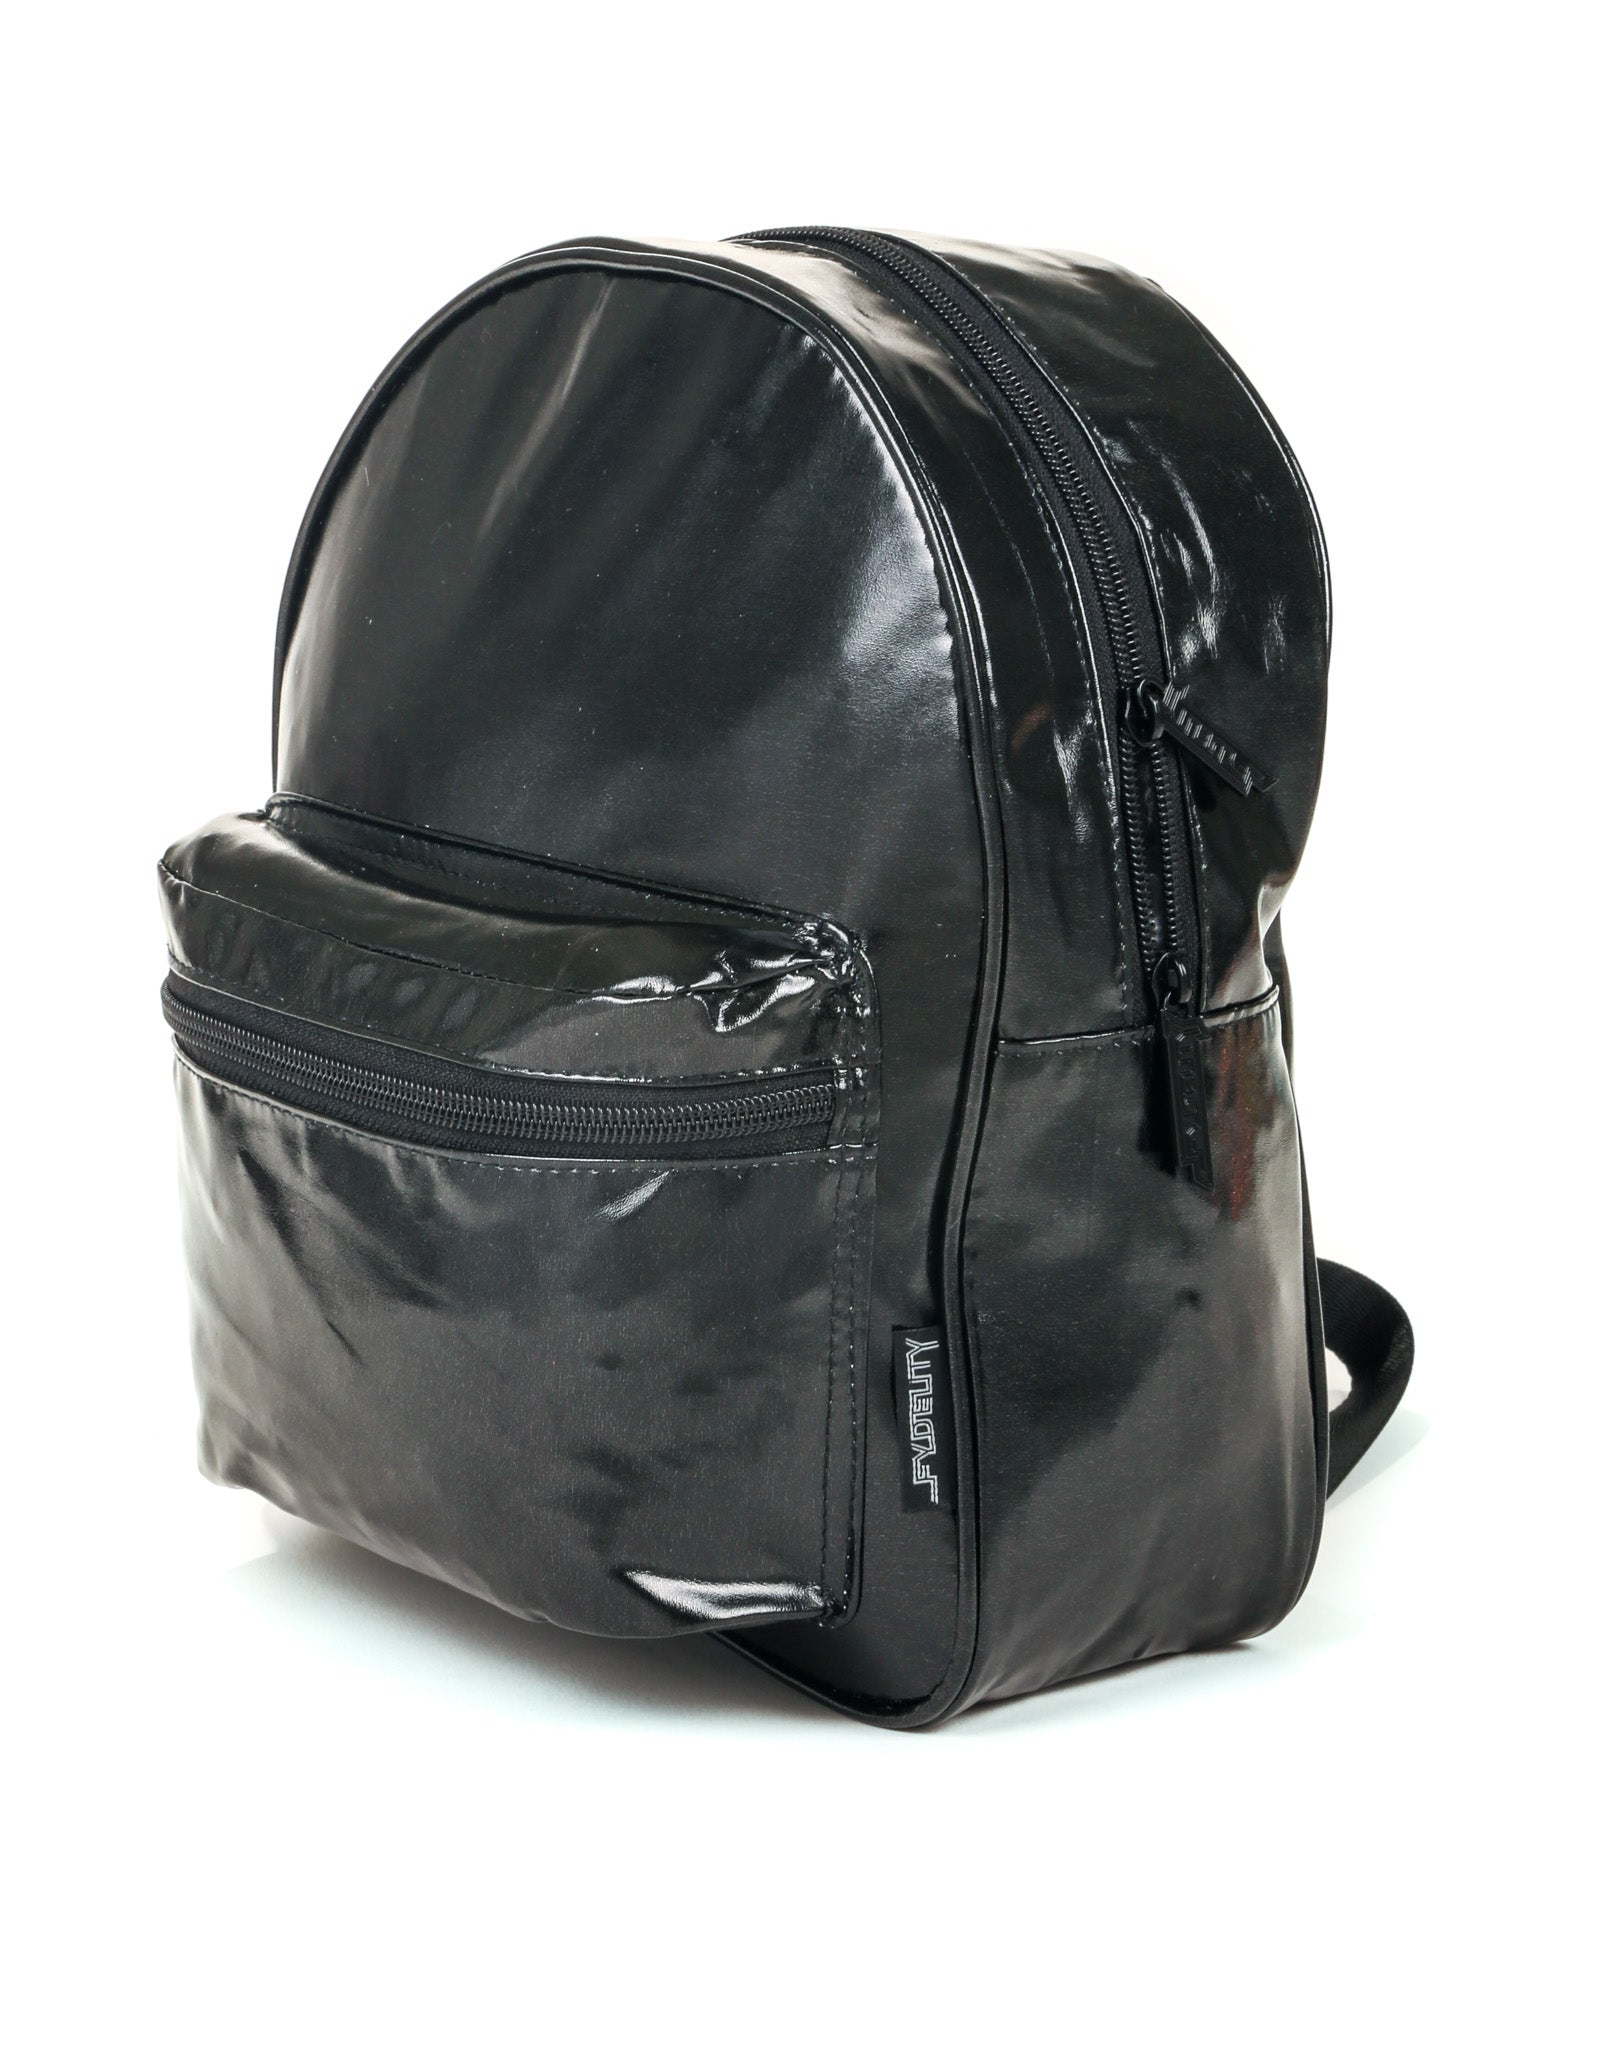 86210: FYDELITY- Mini Backpack: METALLIC Black